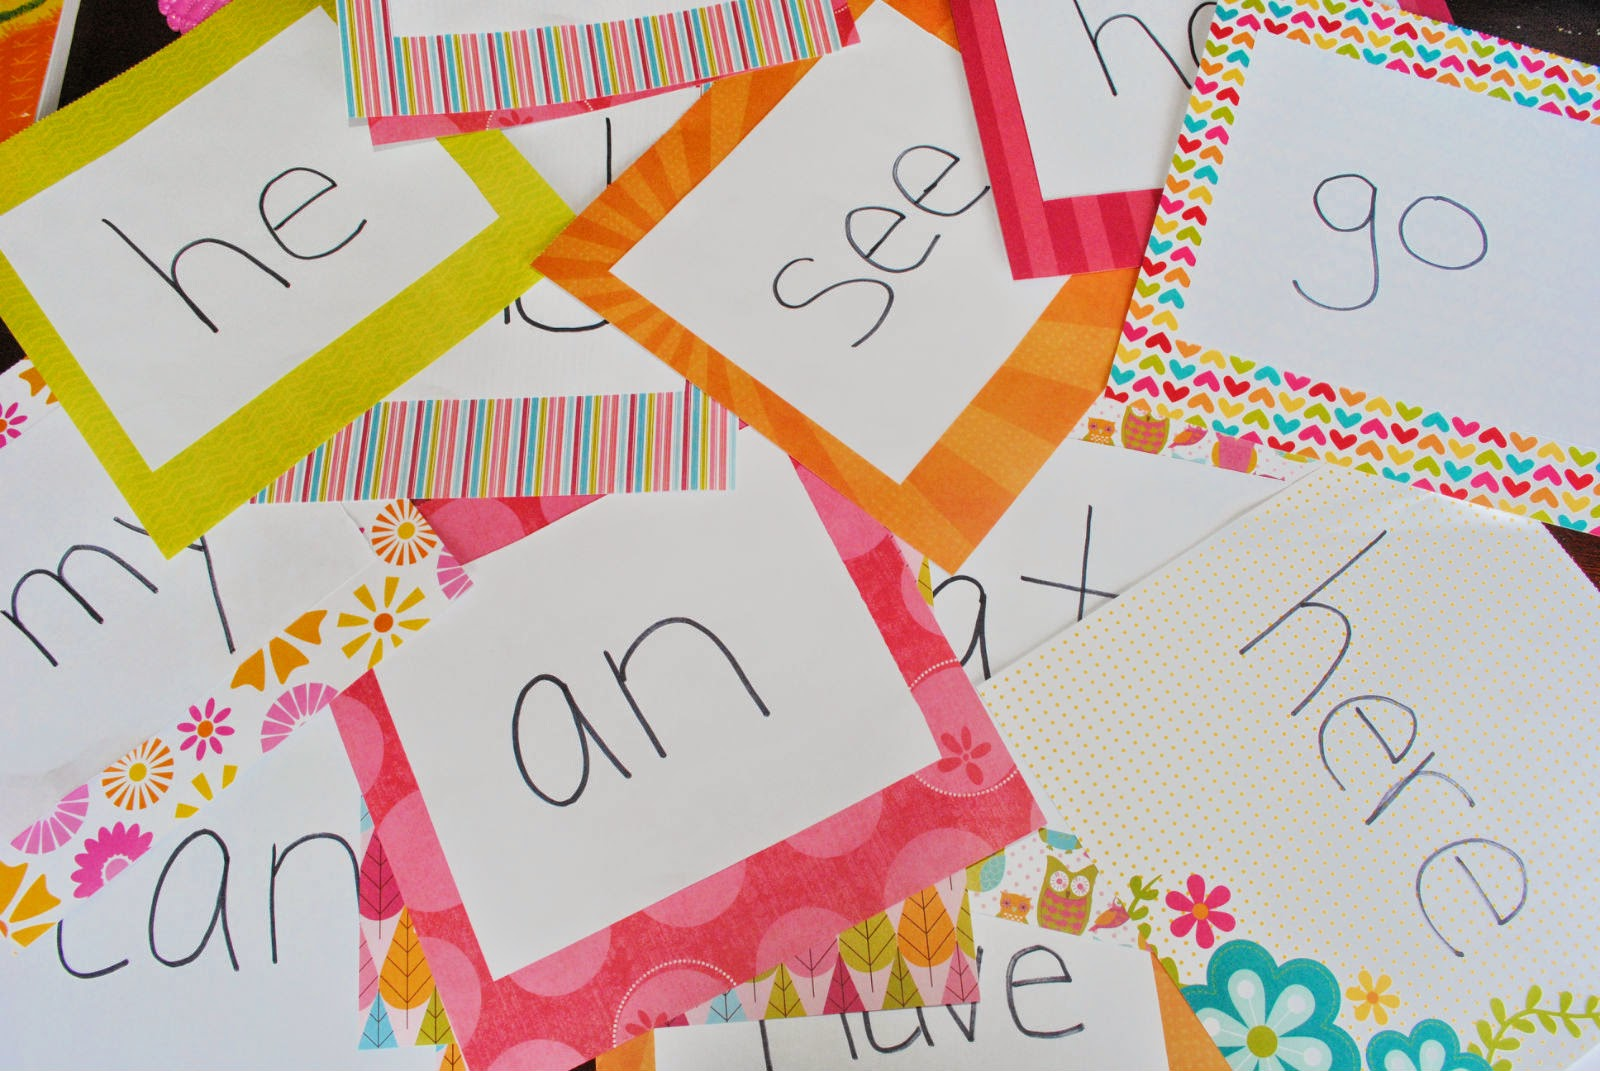 Sight Words on Decorative Paper